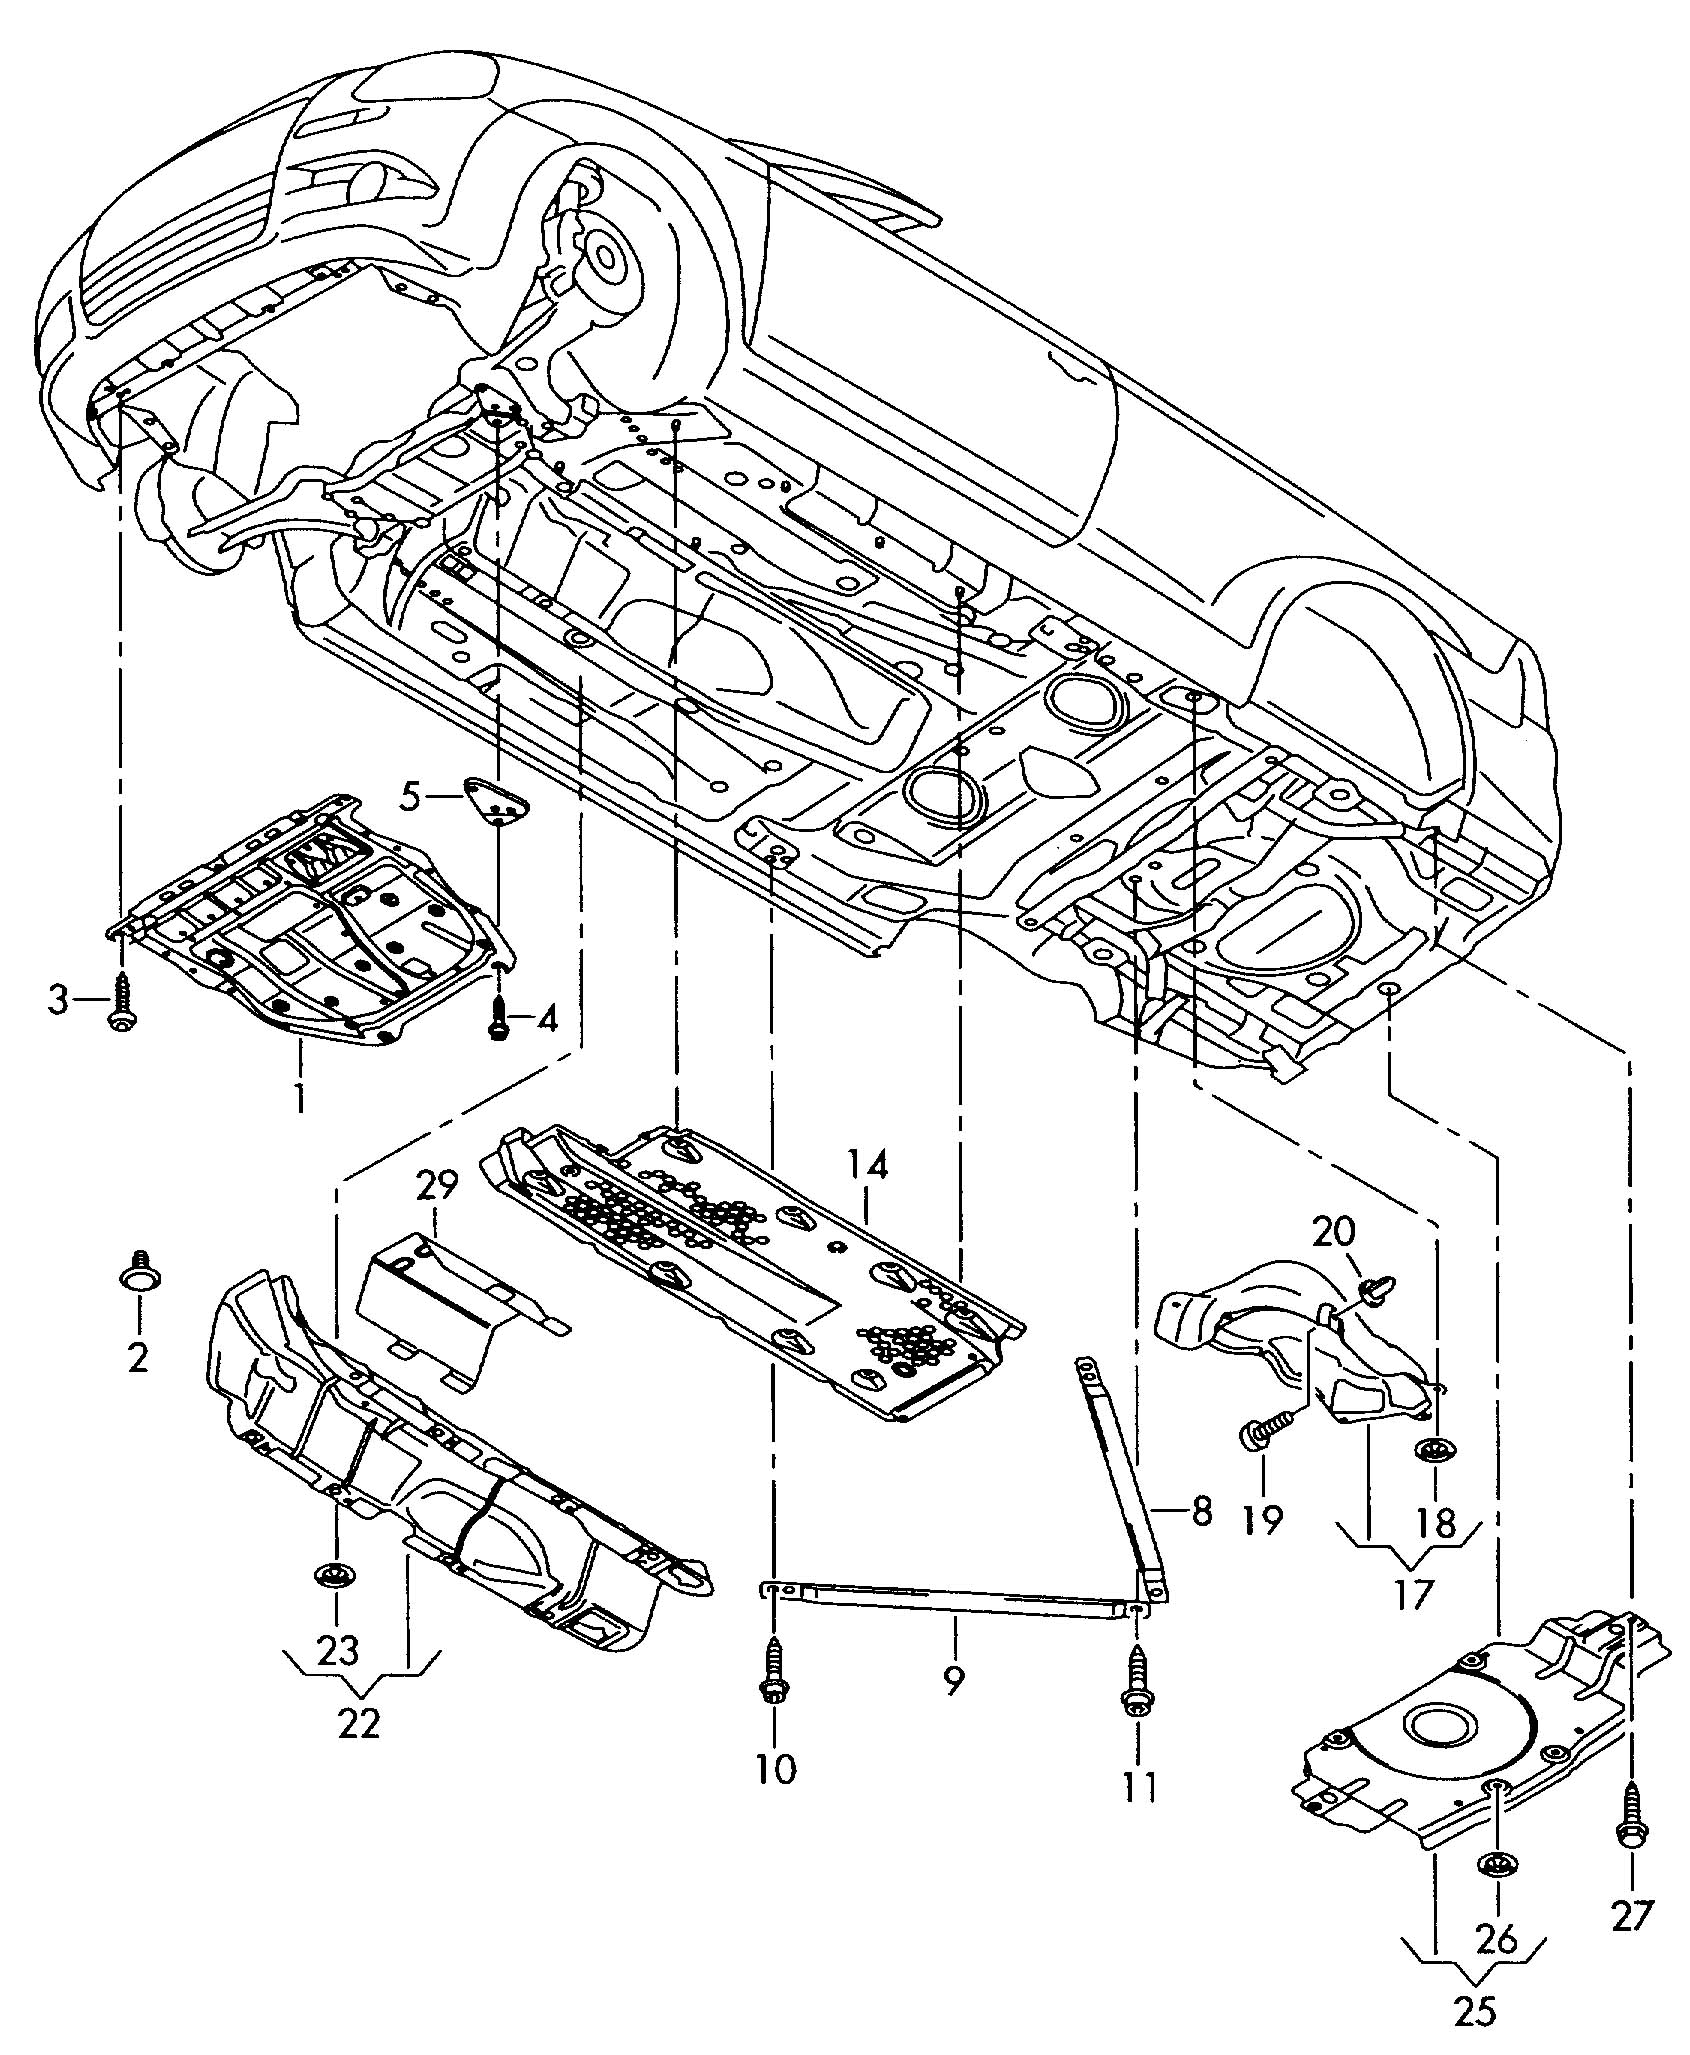 2016 vw jetta fuse box diagram